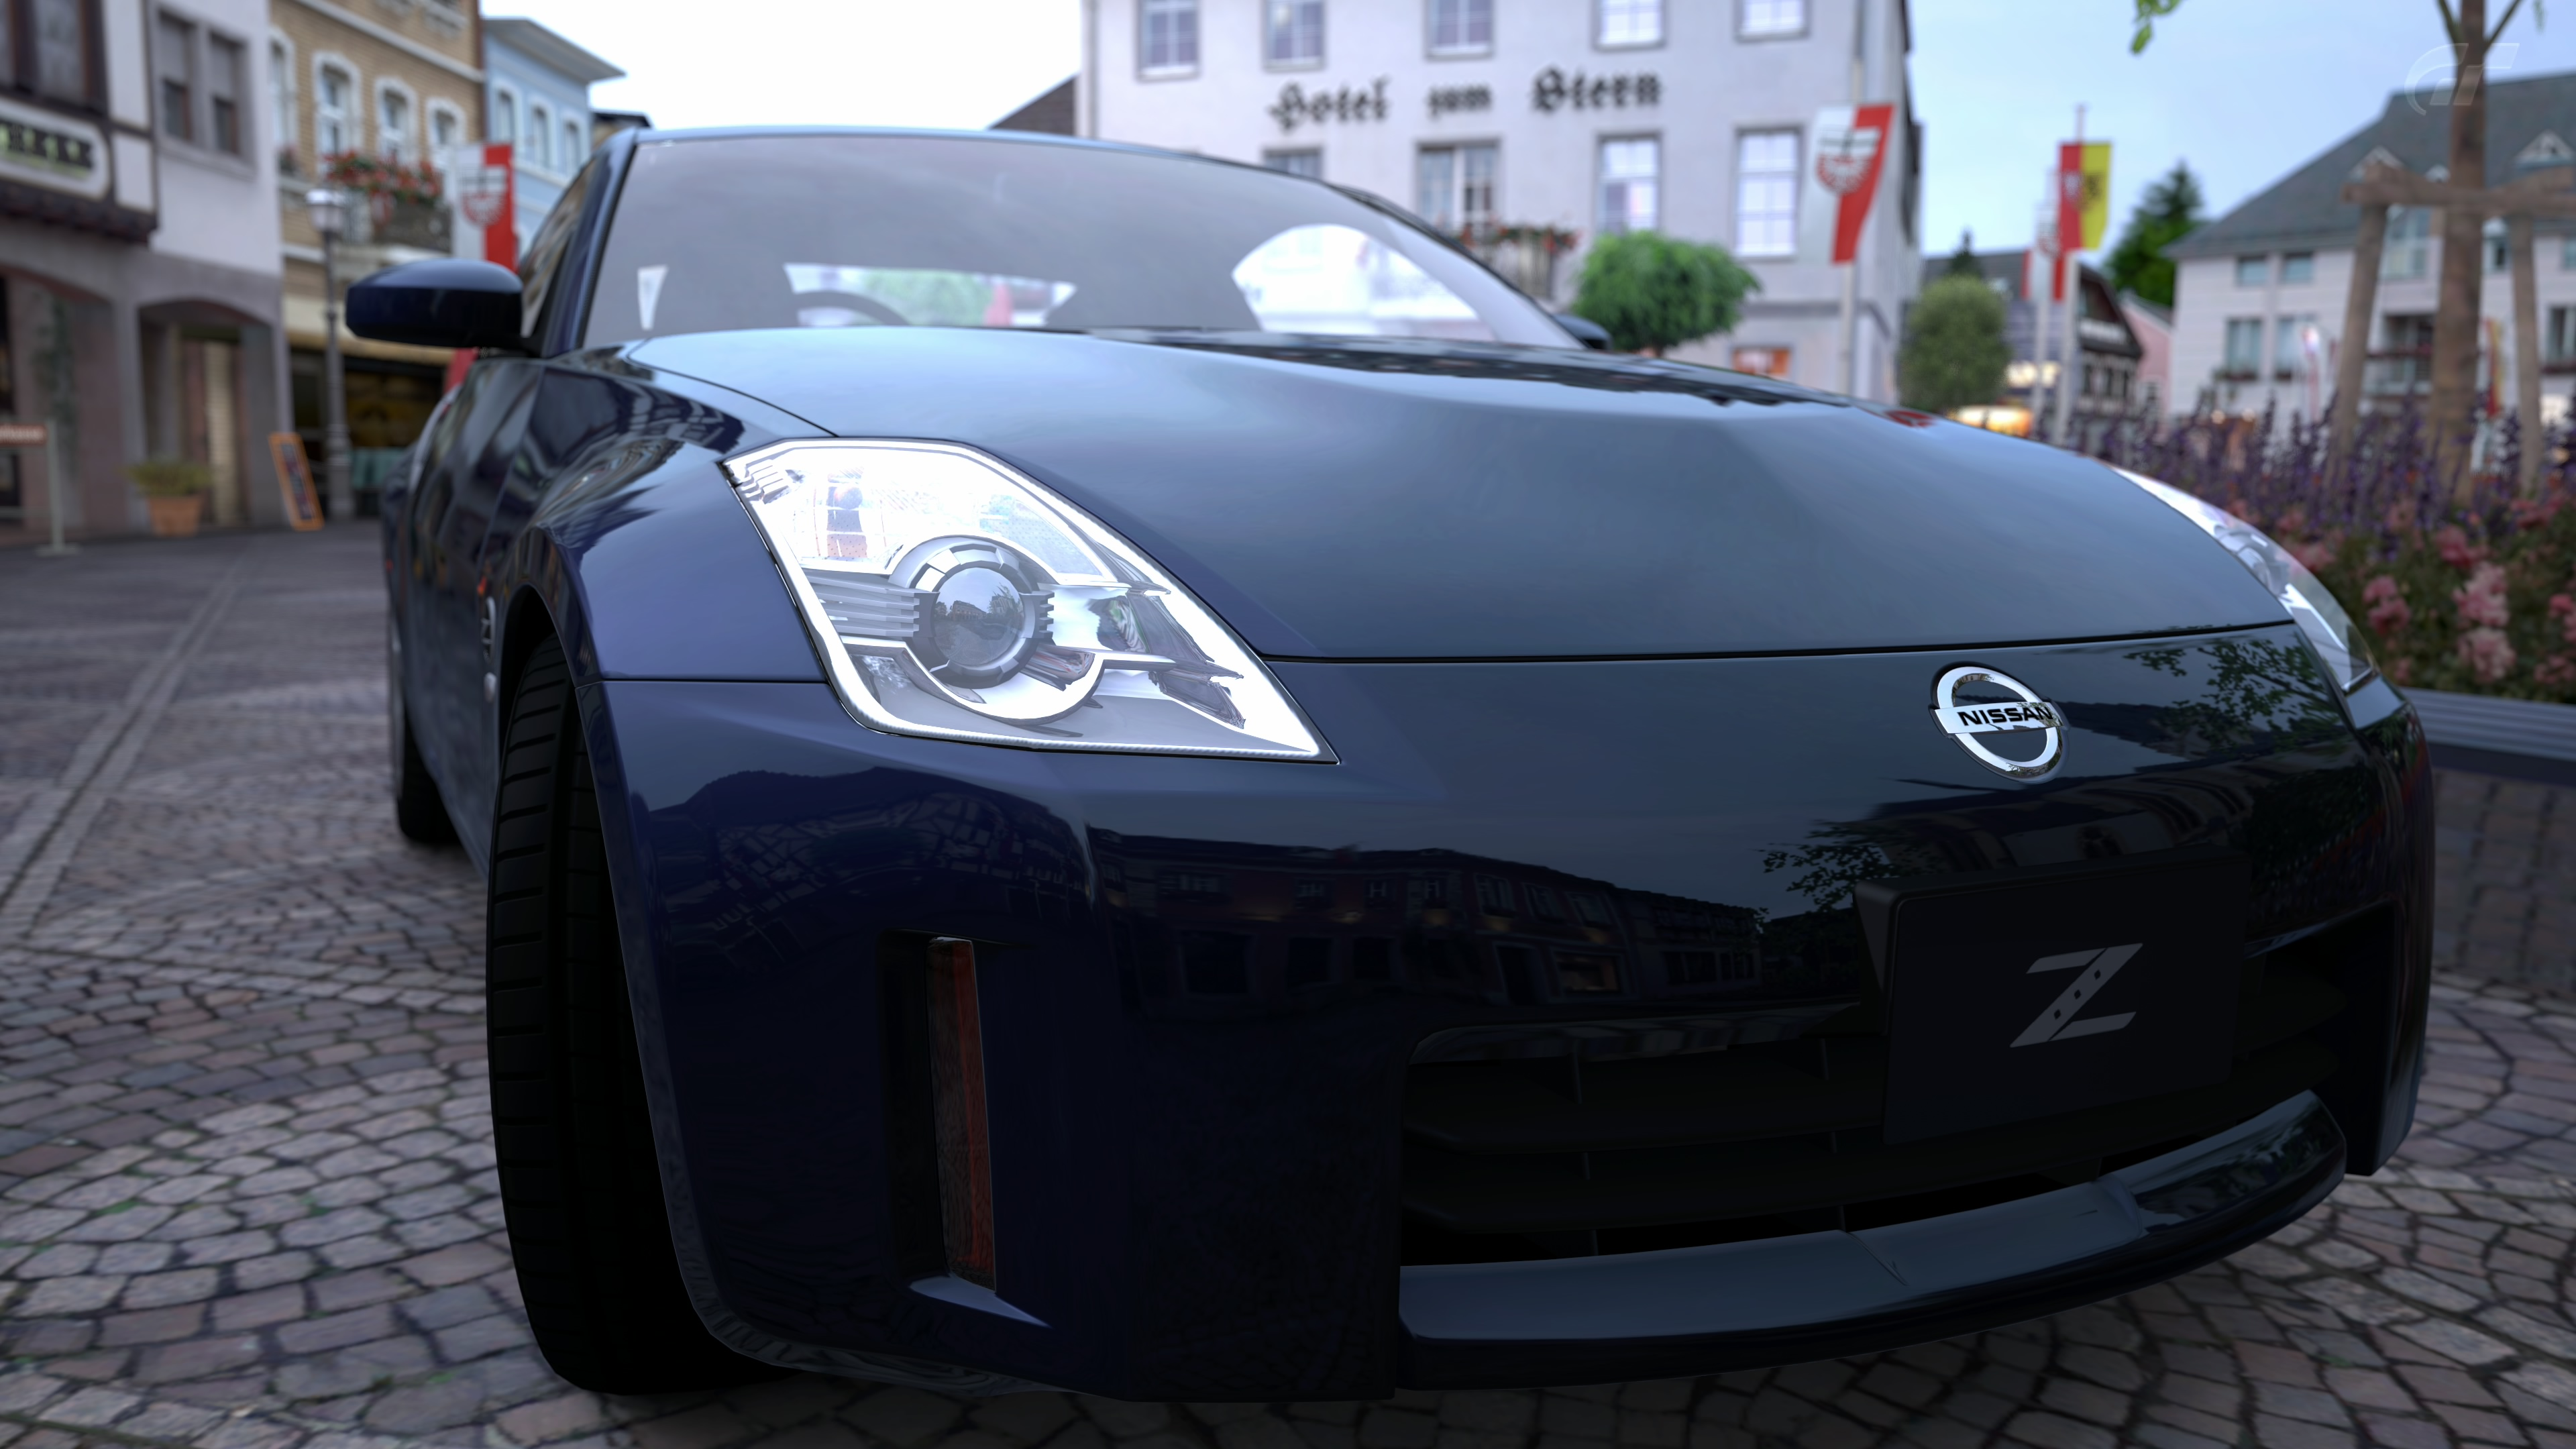 Nissan Fairlady Z, Car, Outdoor, Vehicle, HQ Photo